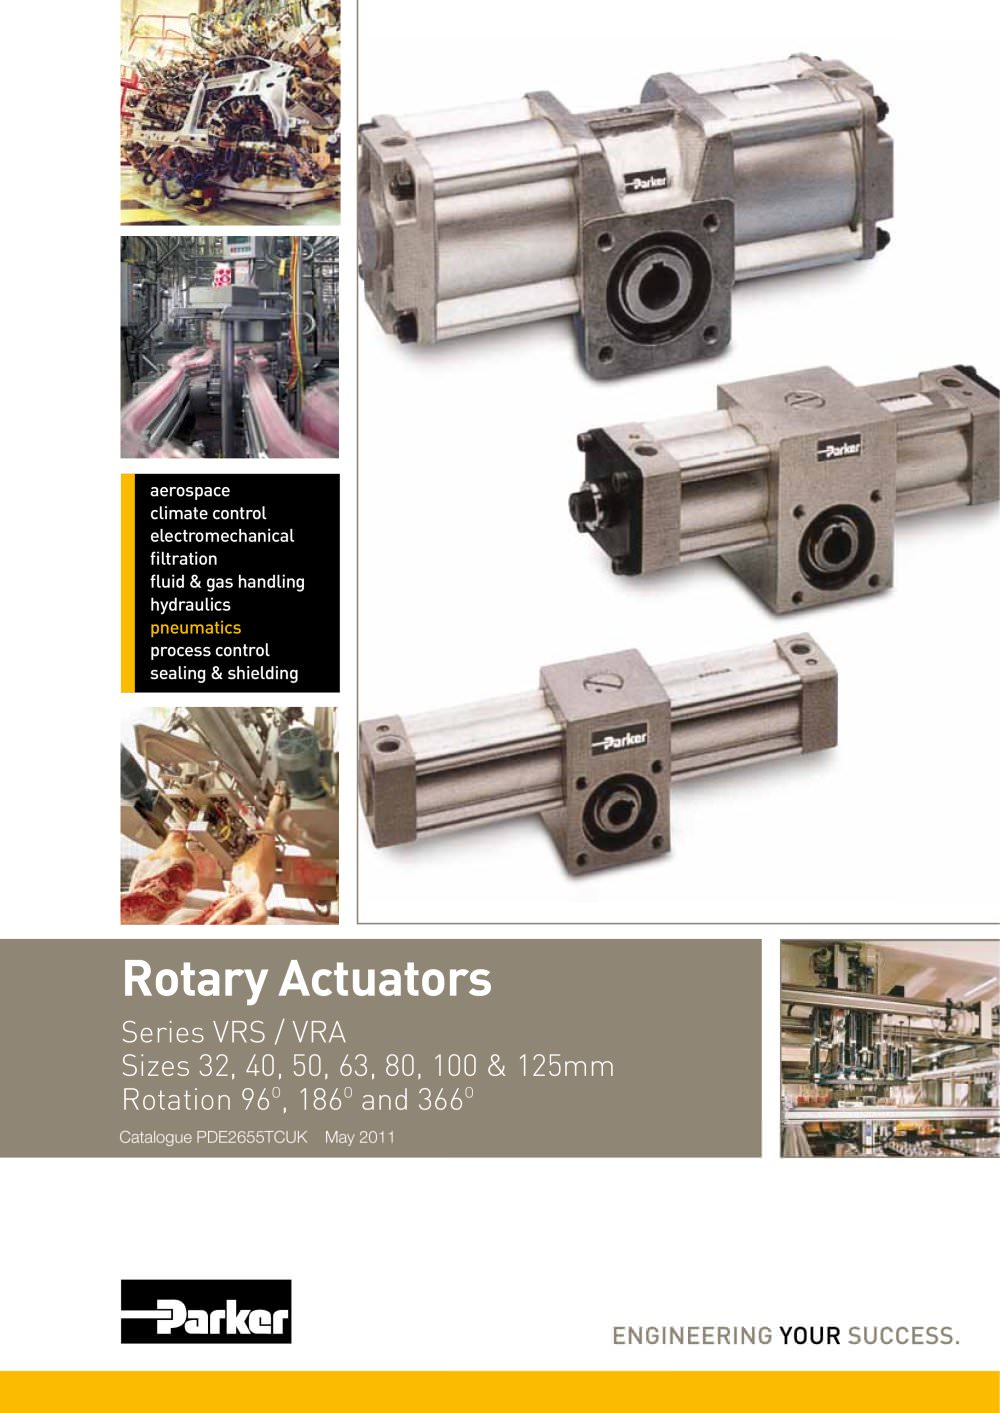 rotary actuators series vrs vra catalogue pde2655tcuk 290811_1b rotary actuators series vrs vra catalogue pde2655tcuk parker Parker Sensor Reed at mifinder.co